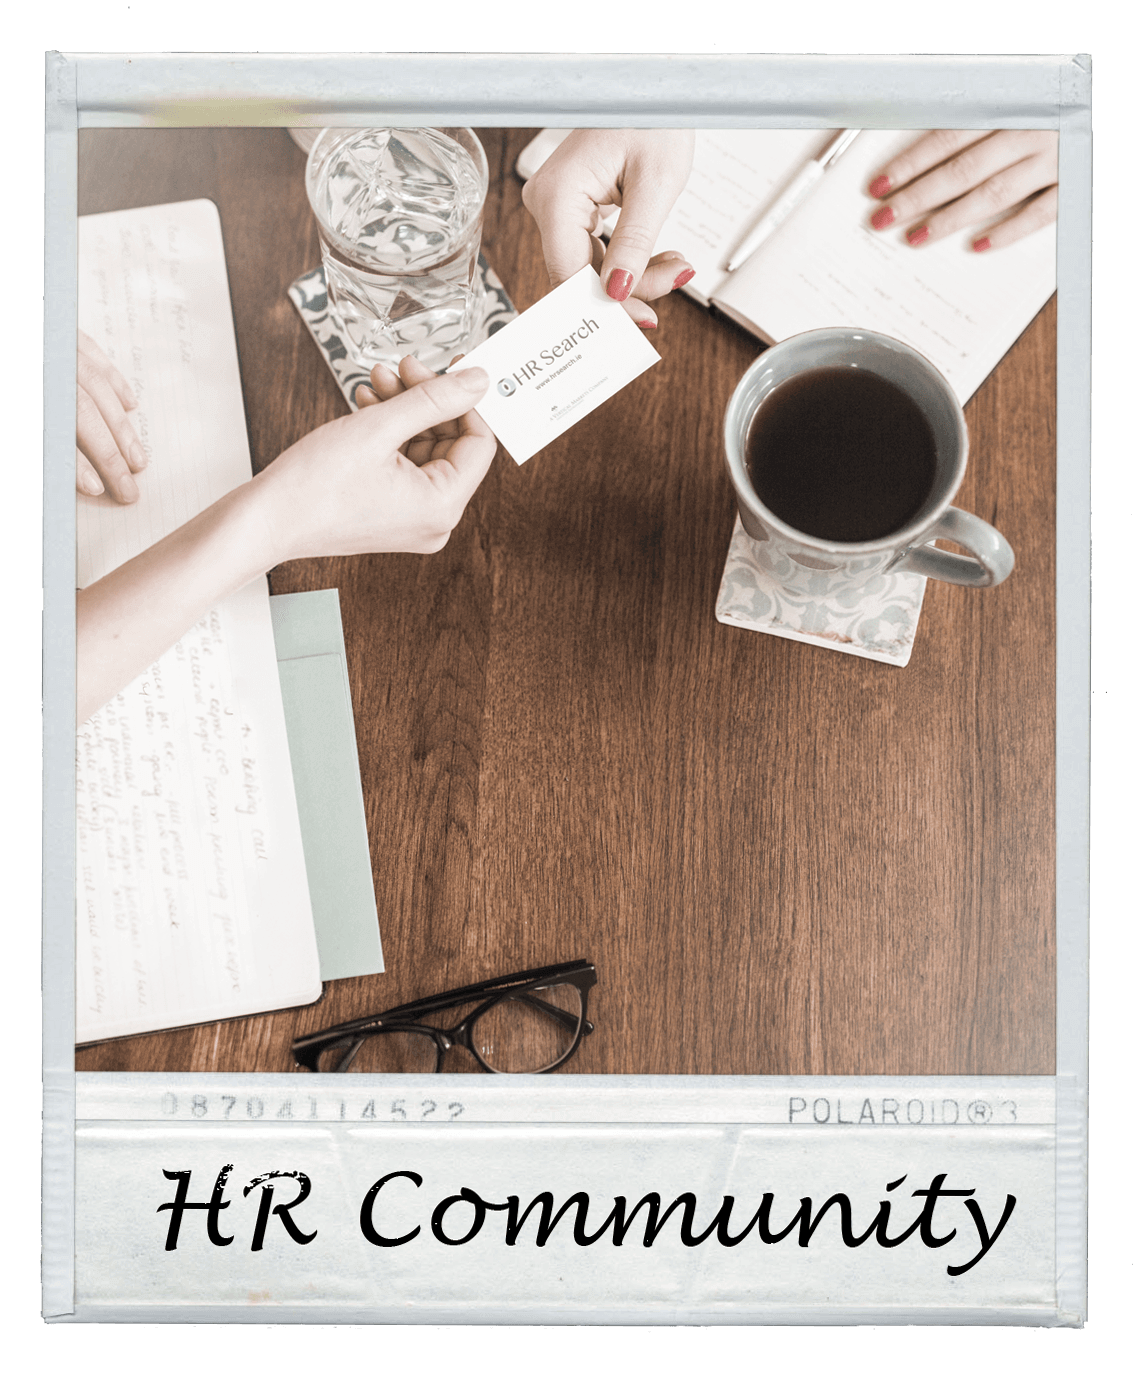 Polaroid HR Community